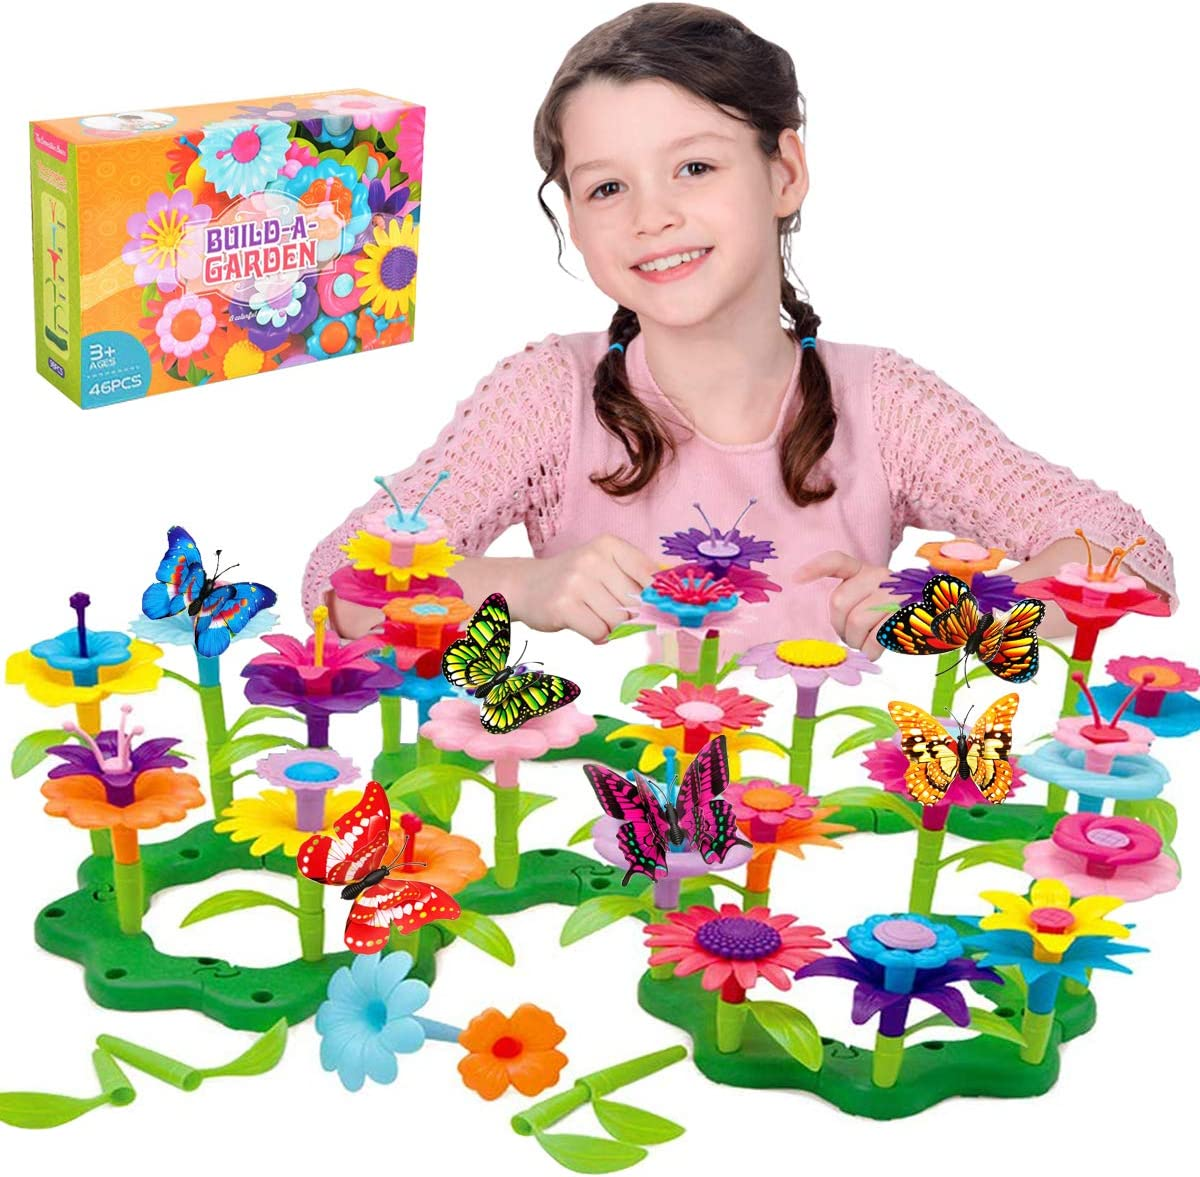 Kyerivs Flower Garden Building Toys Set for Girls Creative Educational Garden Building Blocks Toys 46 PCS Gardening Christmas Birthday Gifts with 6PCS Simulation Butterfly for Children Age 3—7 Years